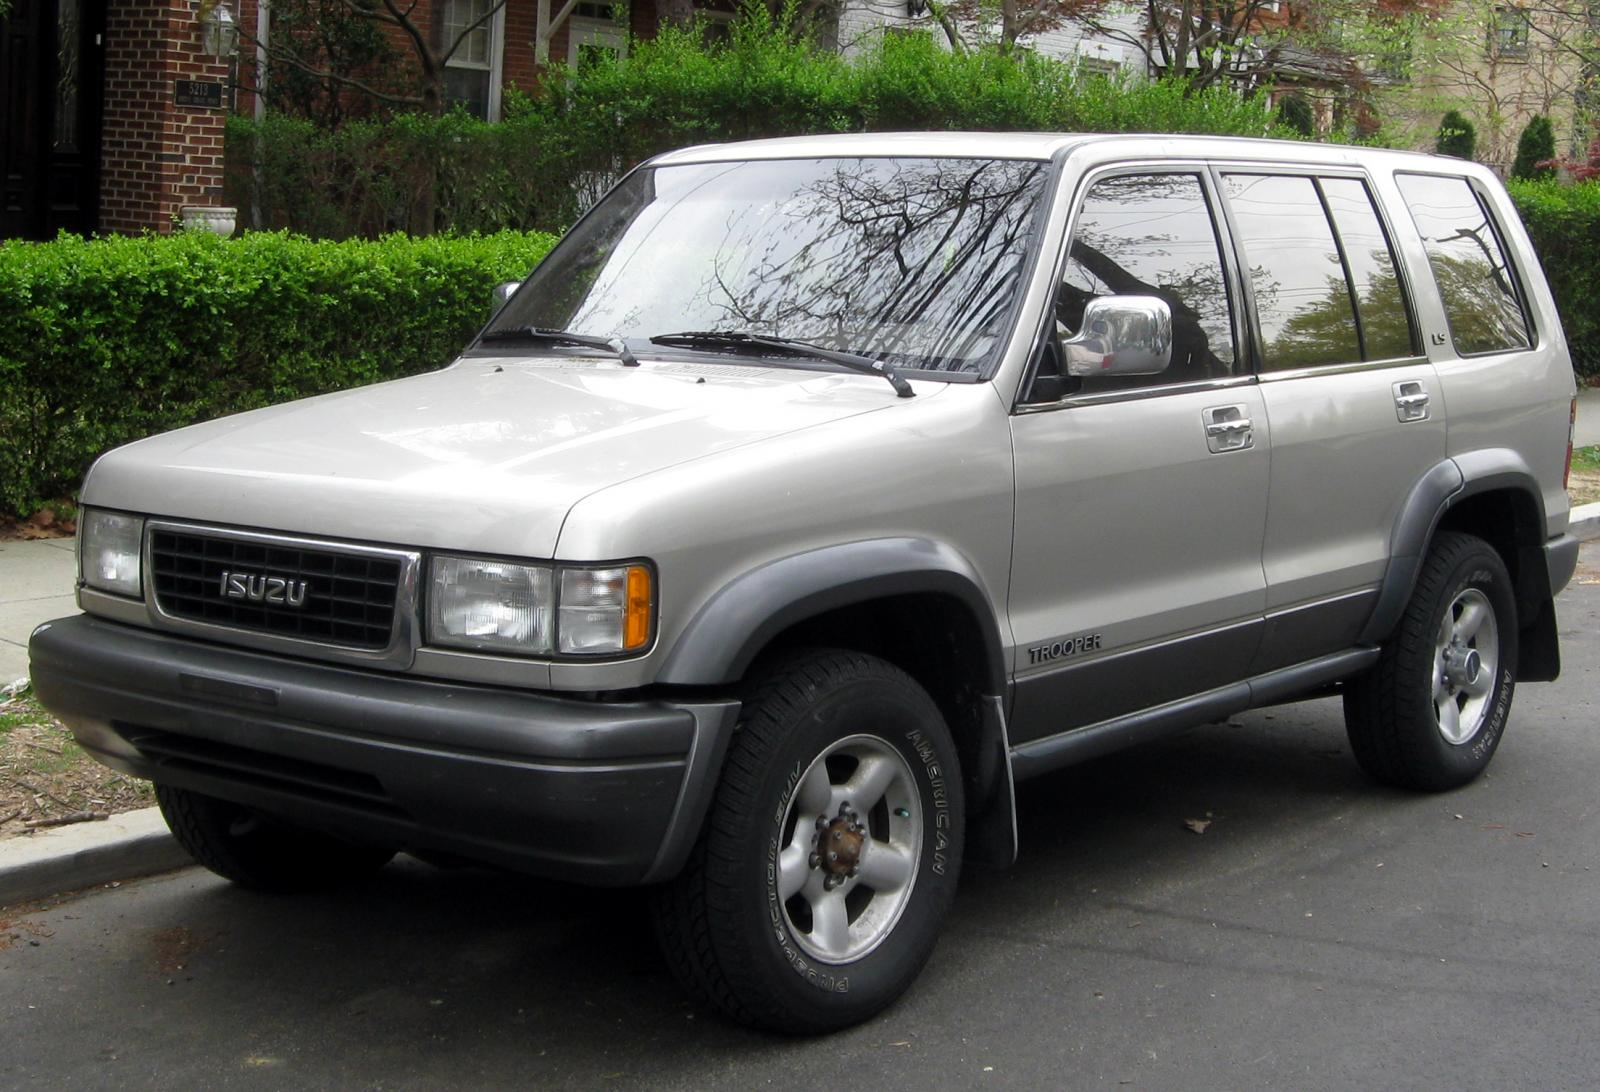 1990 Isuzu Trooper Information And Photos Zombiedrive Npr Wiring Diagram 800 1024 1280 1600 Origin